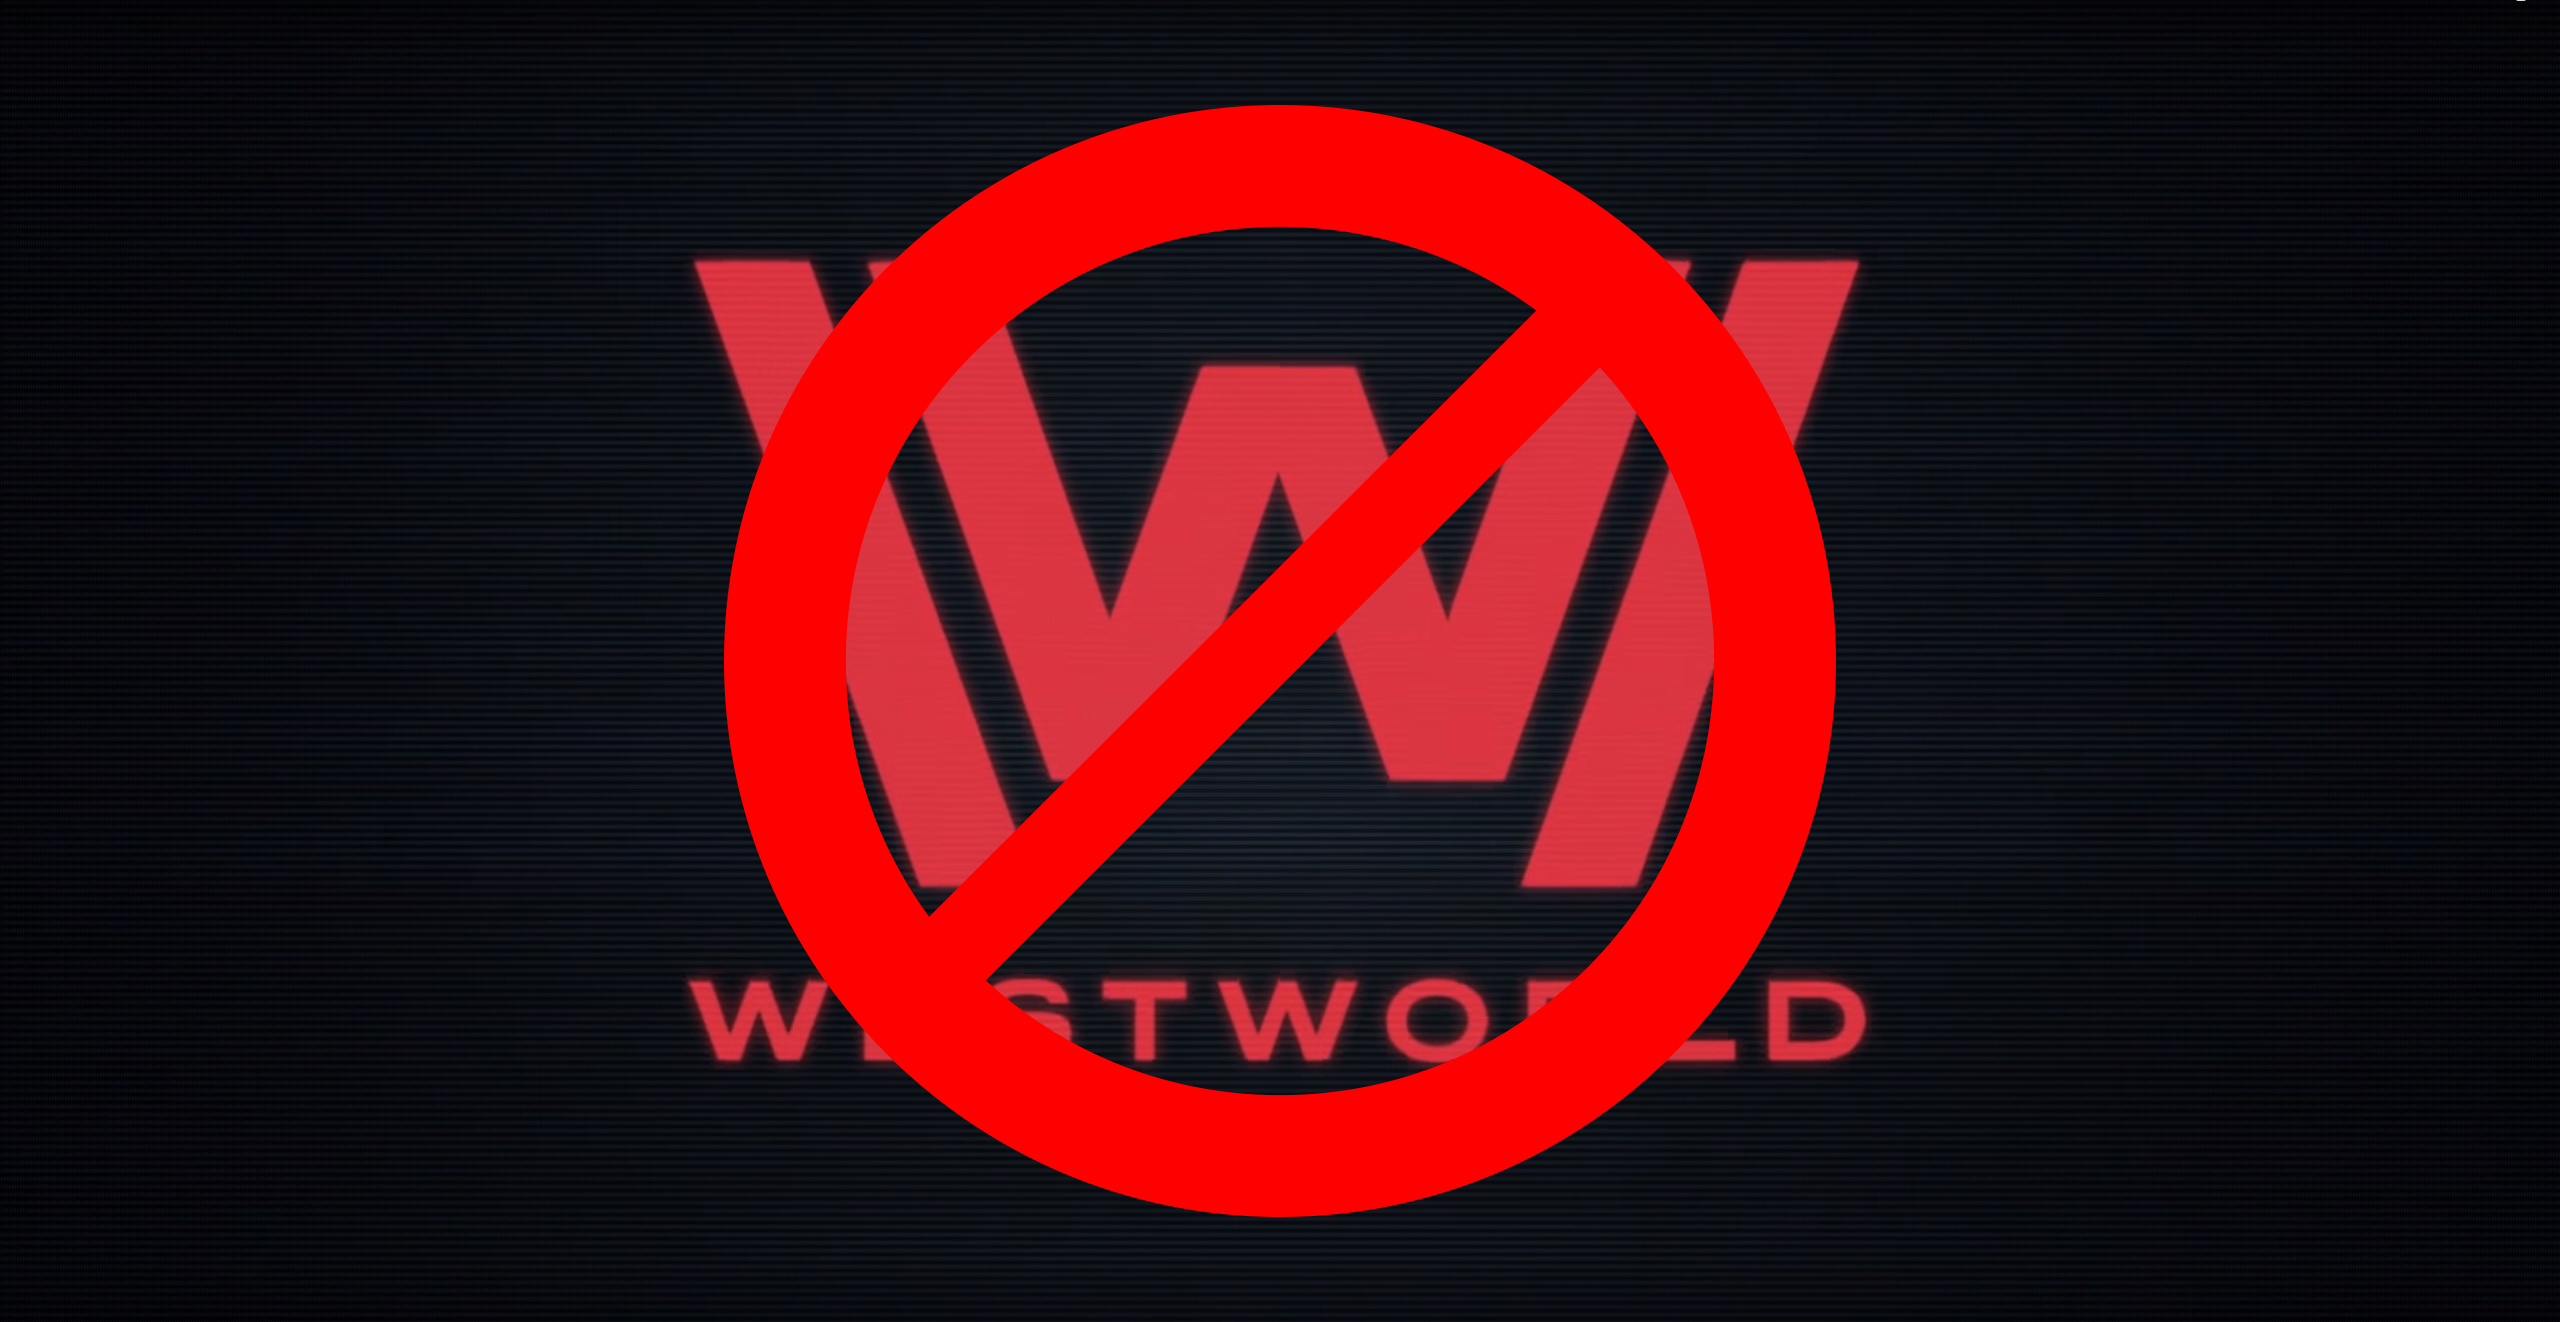 'Westworld' Mobile Game Is Shutting Down in Wake of Bethesda Lawsuit